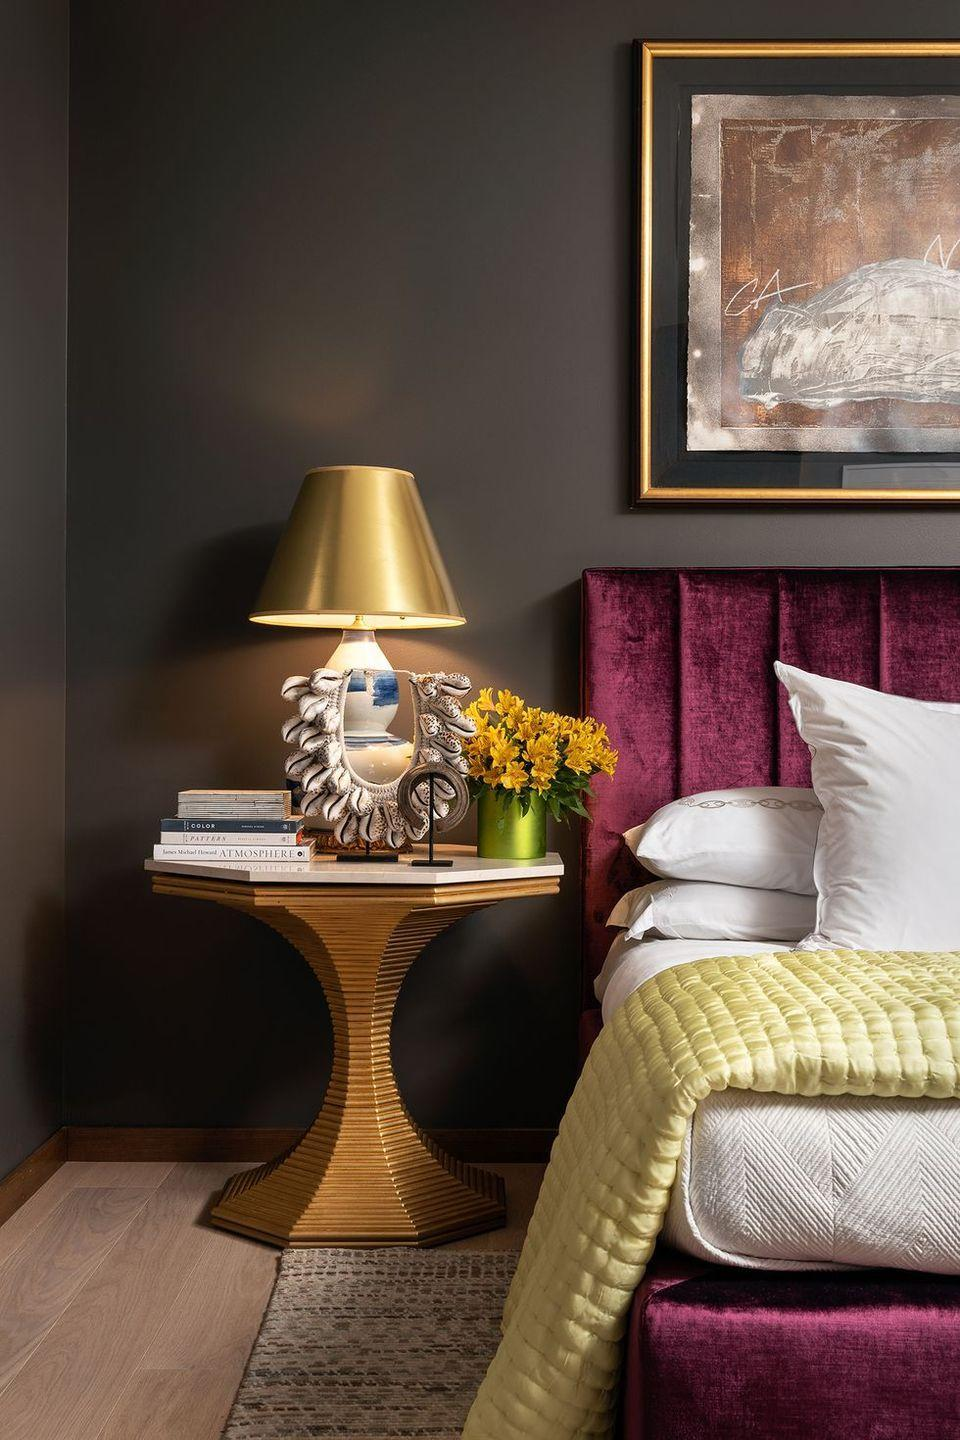 """<p>Dark hues can make a big impact, and this project from interior designer <a href=""""https://www.gaildavisdesignsllc.com/"""" rel=""""nofollow noopener"""" target=""""_blank"""" data-ylk=""""slk:Gail Davis"""" class=""""link rapid-noclick-resp"""">Gail Davis</a> is proof. """"I had the opportunity to use this expressive color in a guest bedroom for a private residence in Princeton, New Jersey. This color did not disappoint, being the perfect backdrop for the headboard and artwork. It takes your breath away.""""</p><p><a class=""""link rapid-noclick-resp"""" href=""""https://www.paintoutlets.com/products/z5-darjeeling"""" rel=""""nofollow noopener"""" target=""""_blank"""" data-ylk=""""slk:SHOP NOW"""">SHOP NOW</a></p>"""